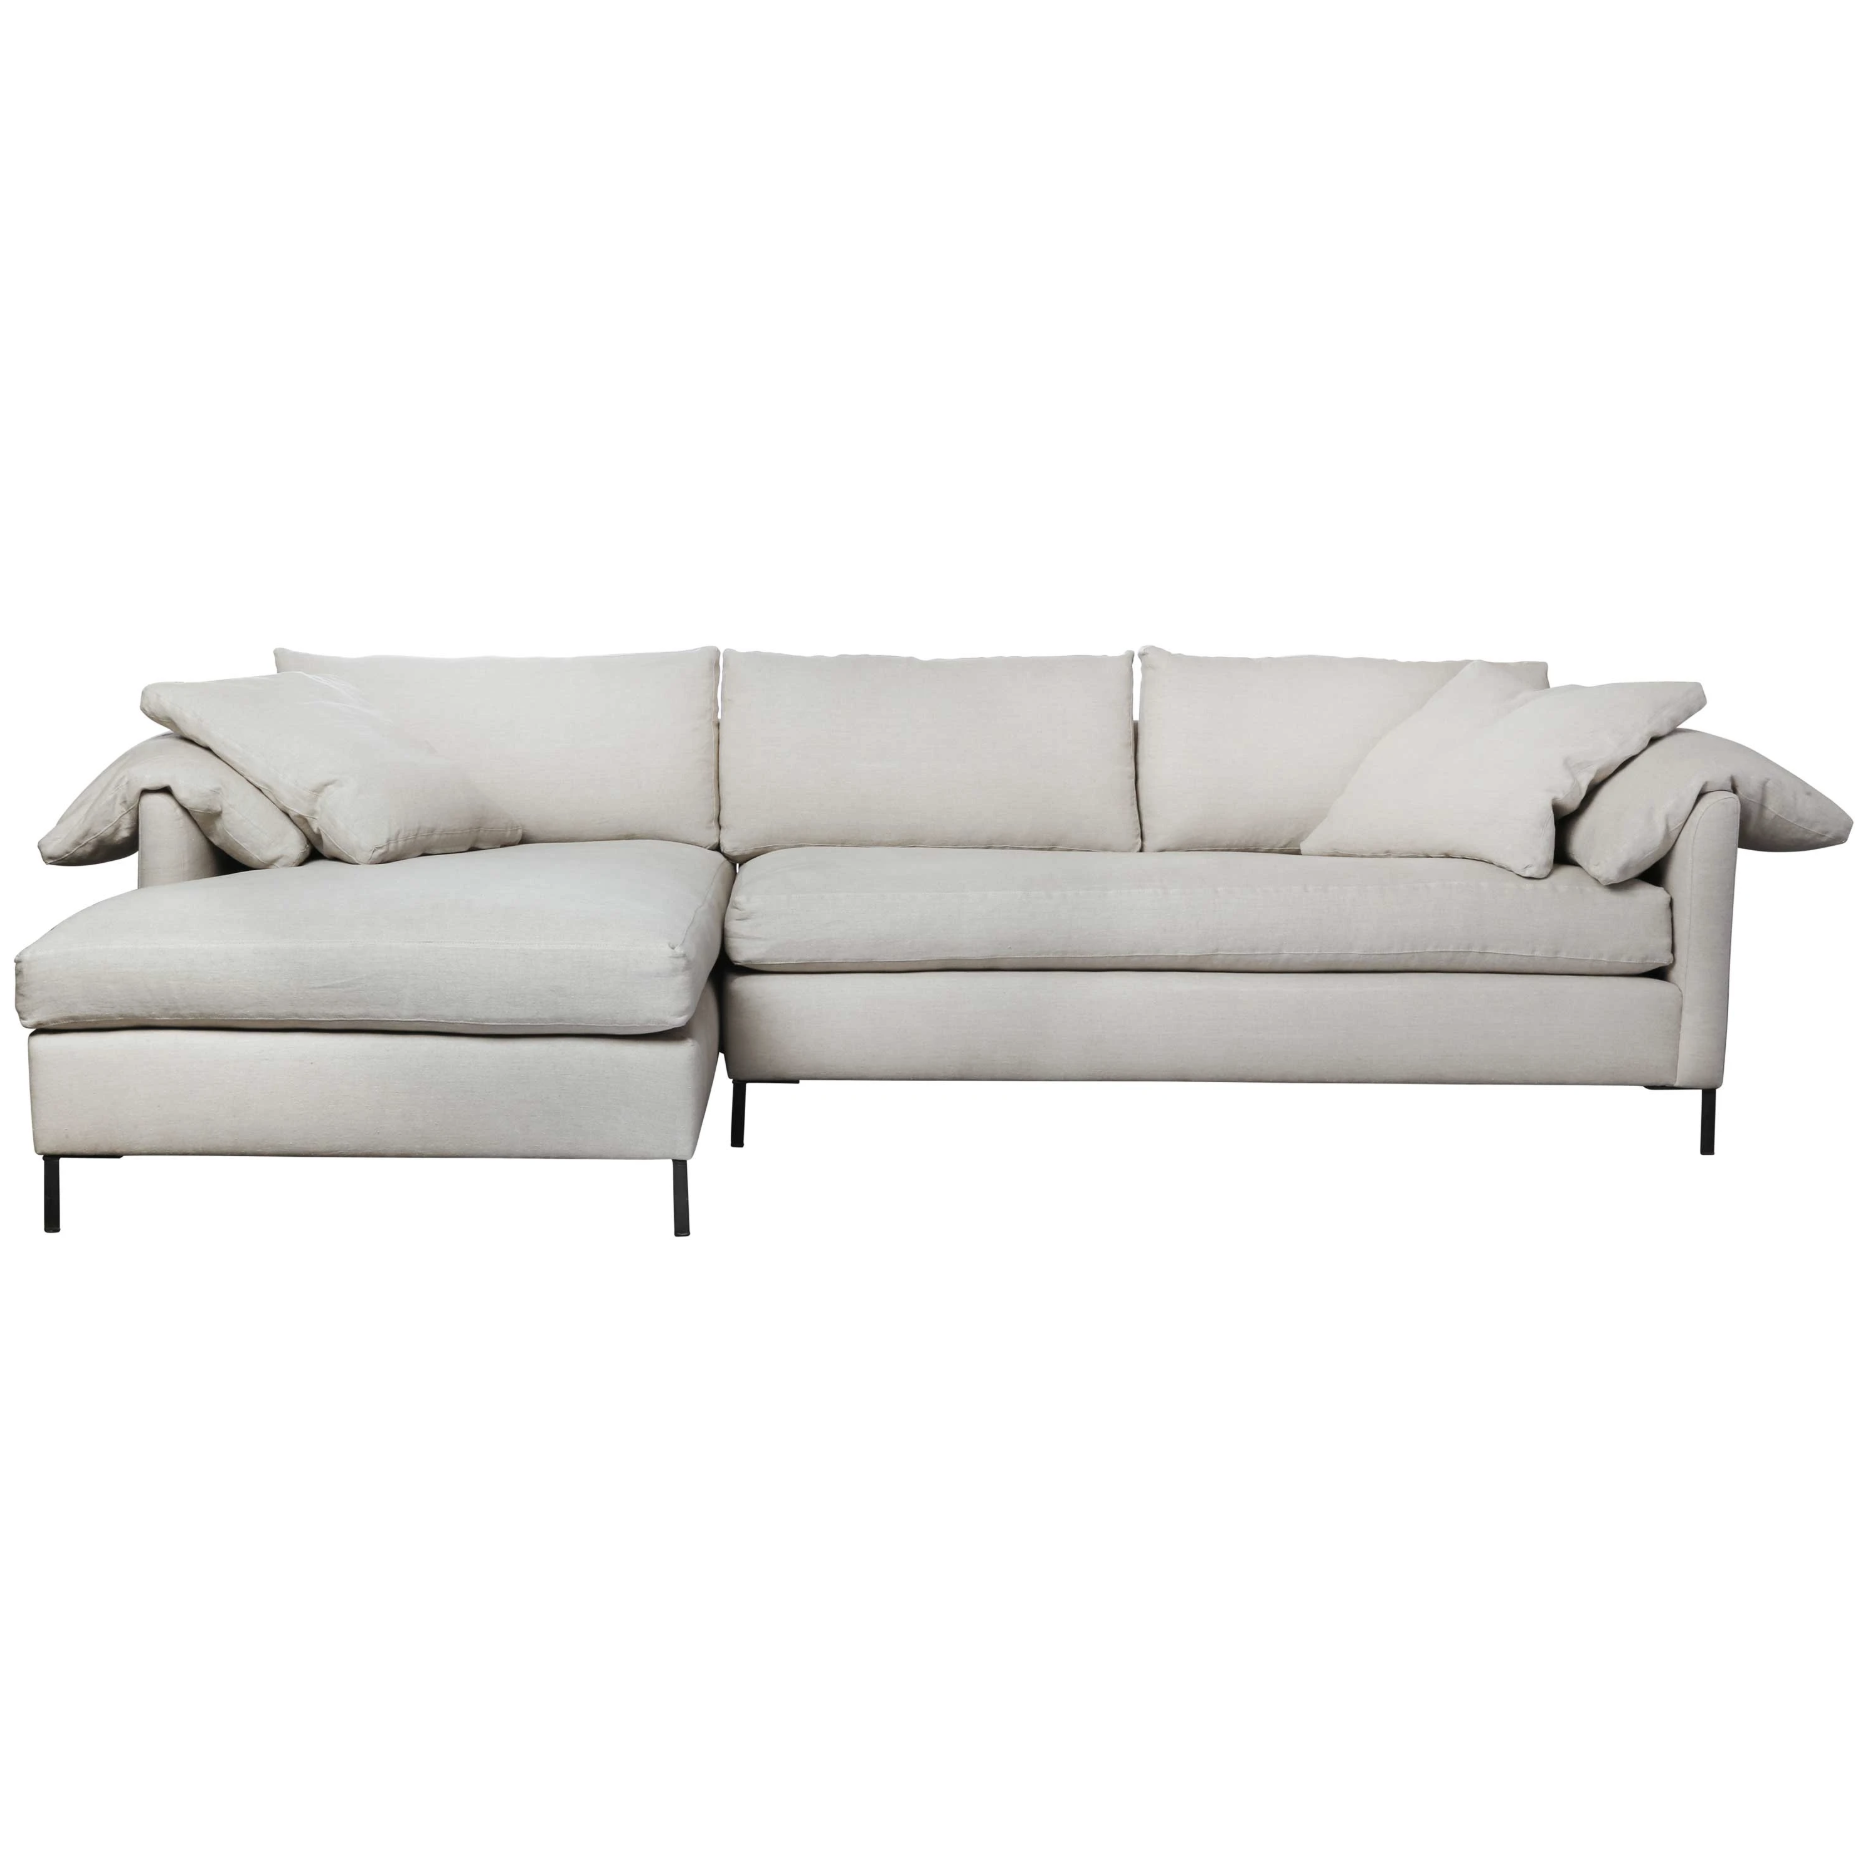 """Always a stunner, the Cisco Brothers Radley Sectional, photographed in a medium weight linen is show in a left-arm facing sectional with metal feet. Additional fabrics, custom sizes, and prices are available via emailing us at sales@amethysthome.com.  Size:  120""""w x 63""""d x 30""""h  Seat space:  115""""w x 49""""d x 20""""h"""